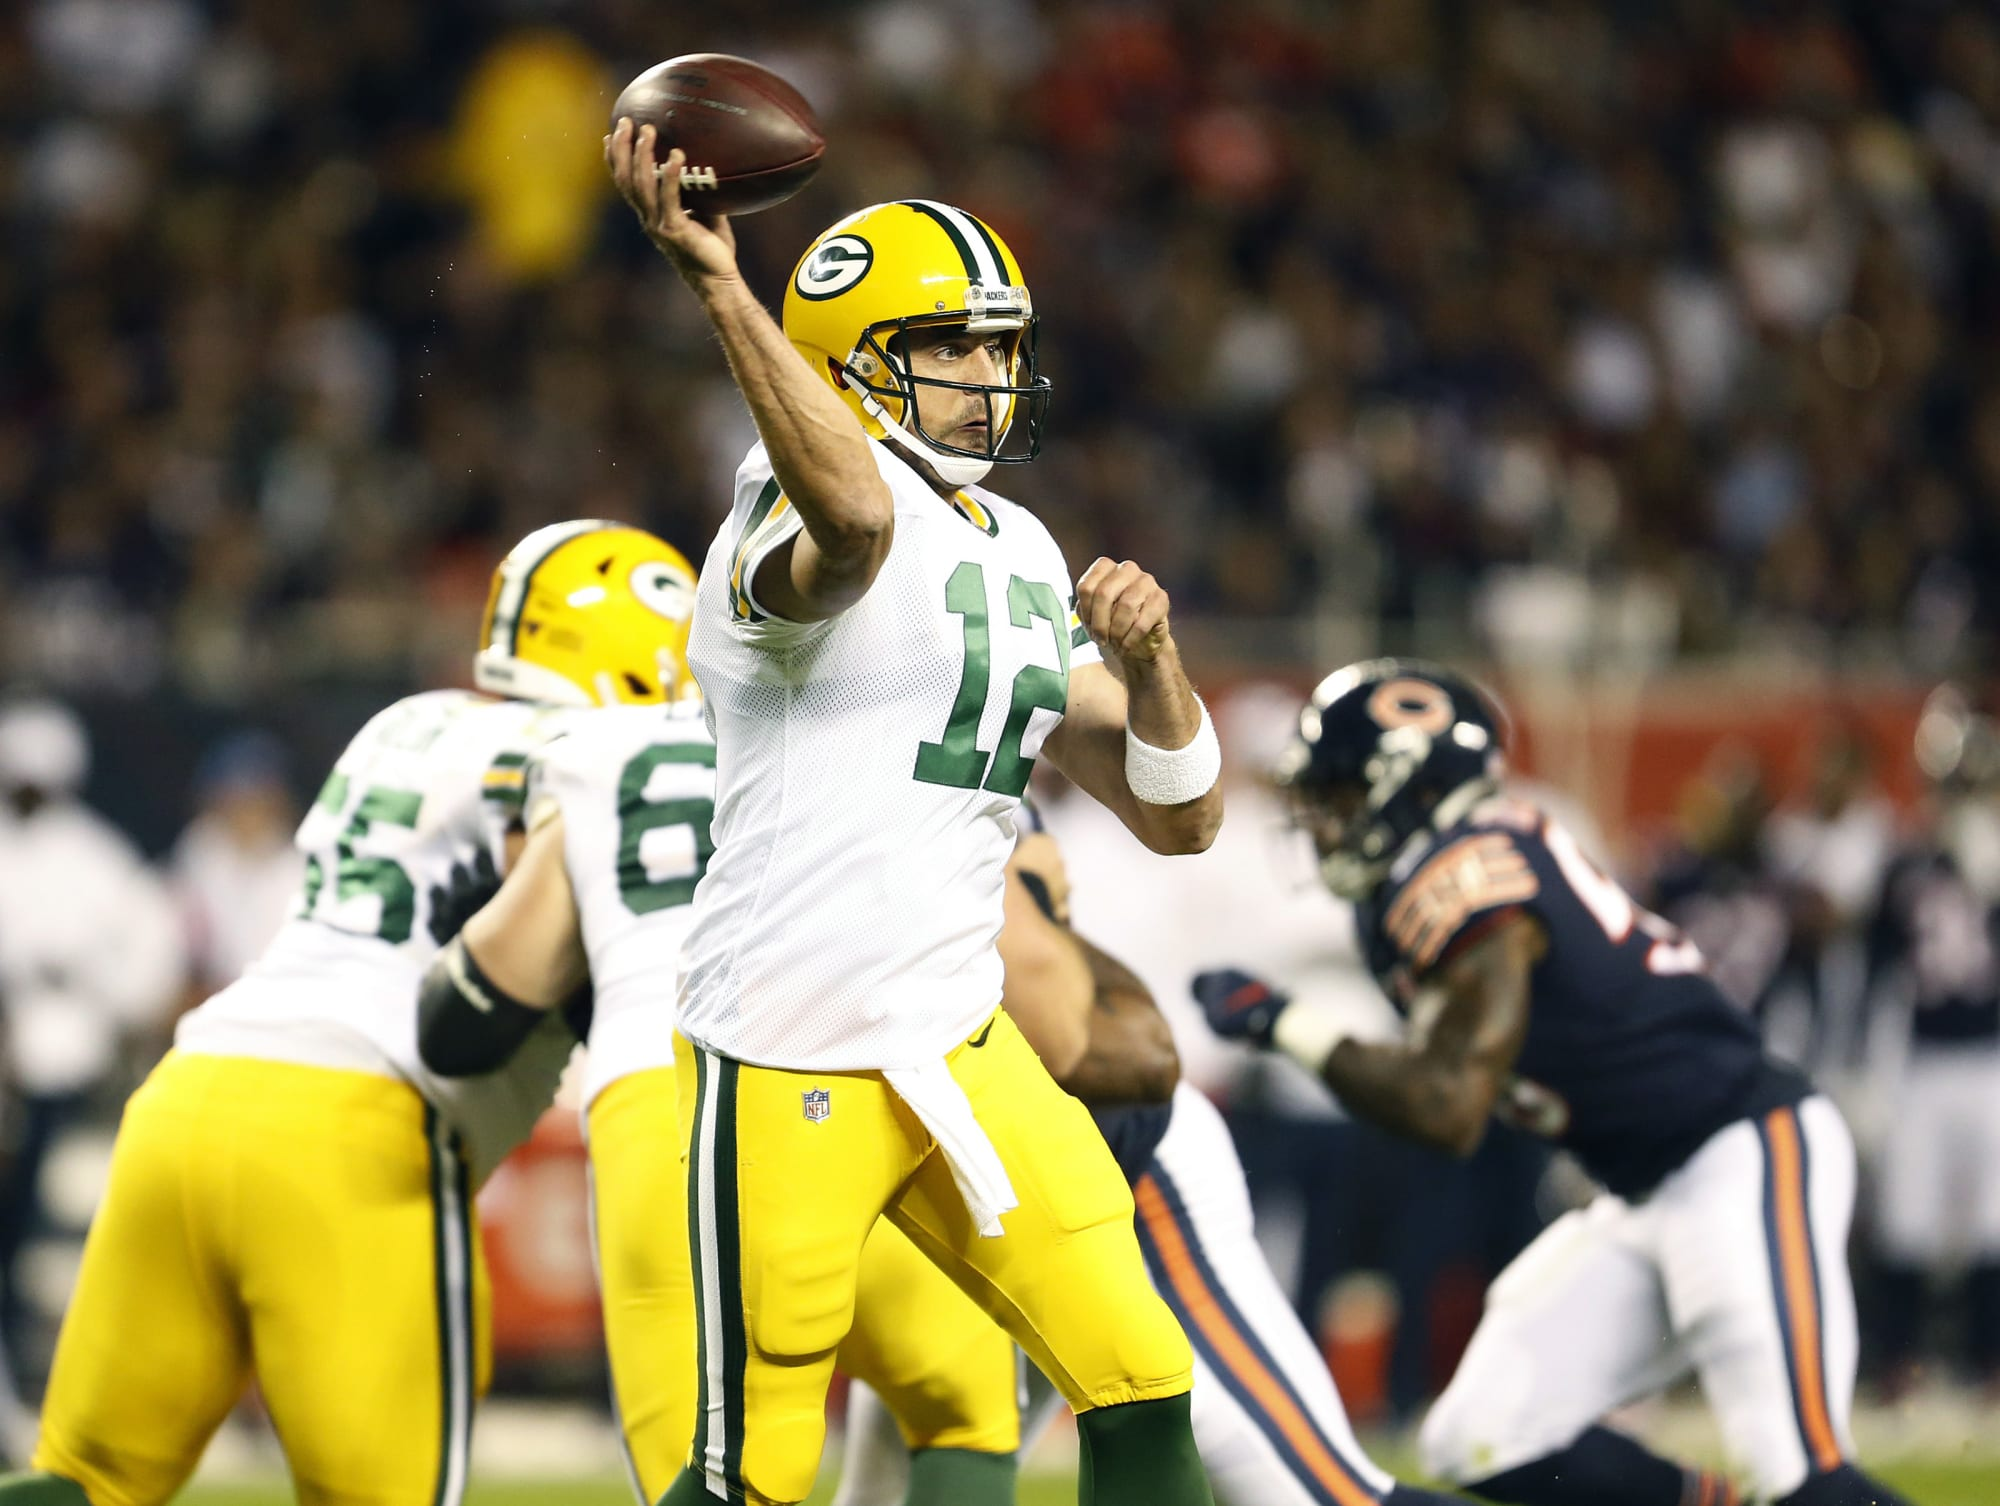 Chicago Bears: Aaron Rodgers leaving Green Bay would be a miracle